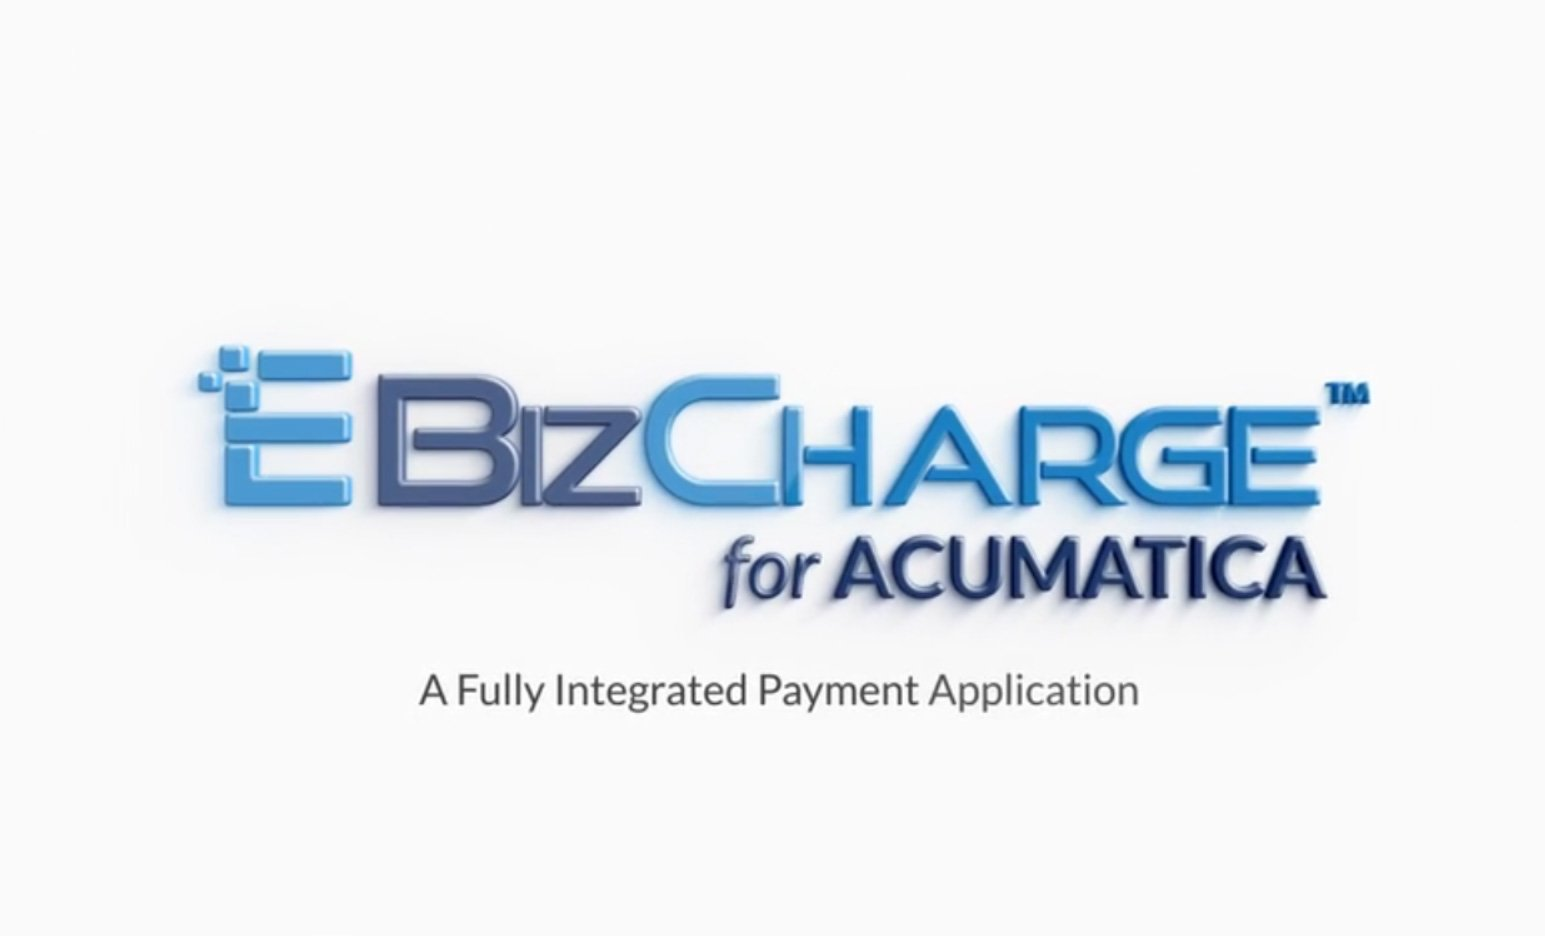 eBizCharge for Acumatica Payment Gateway Overview